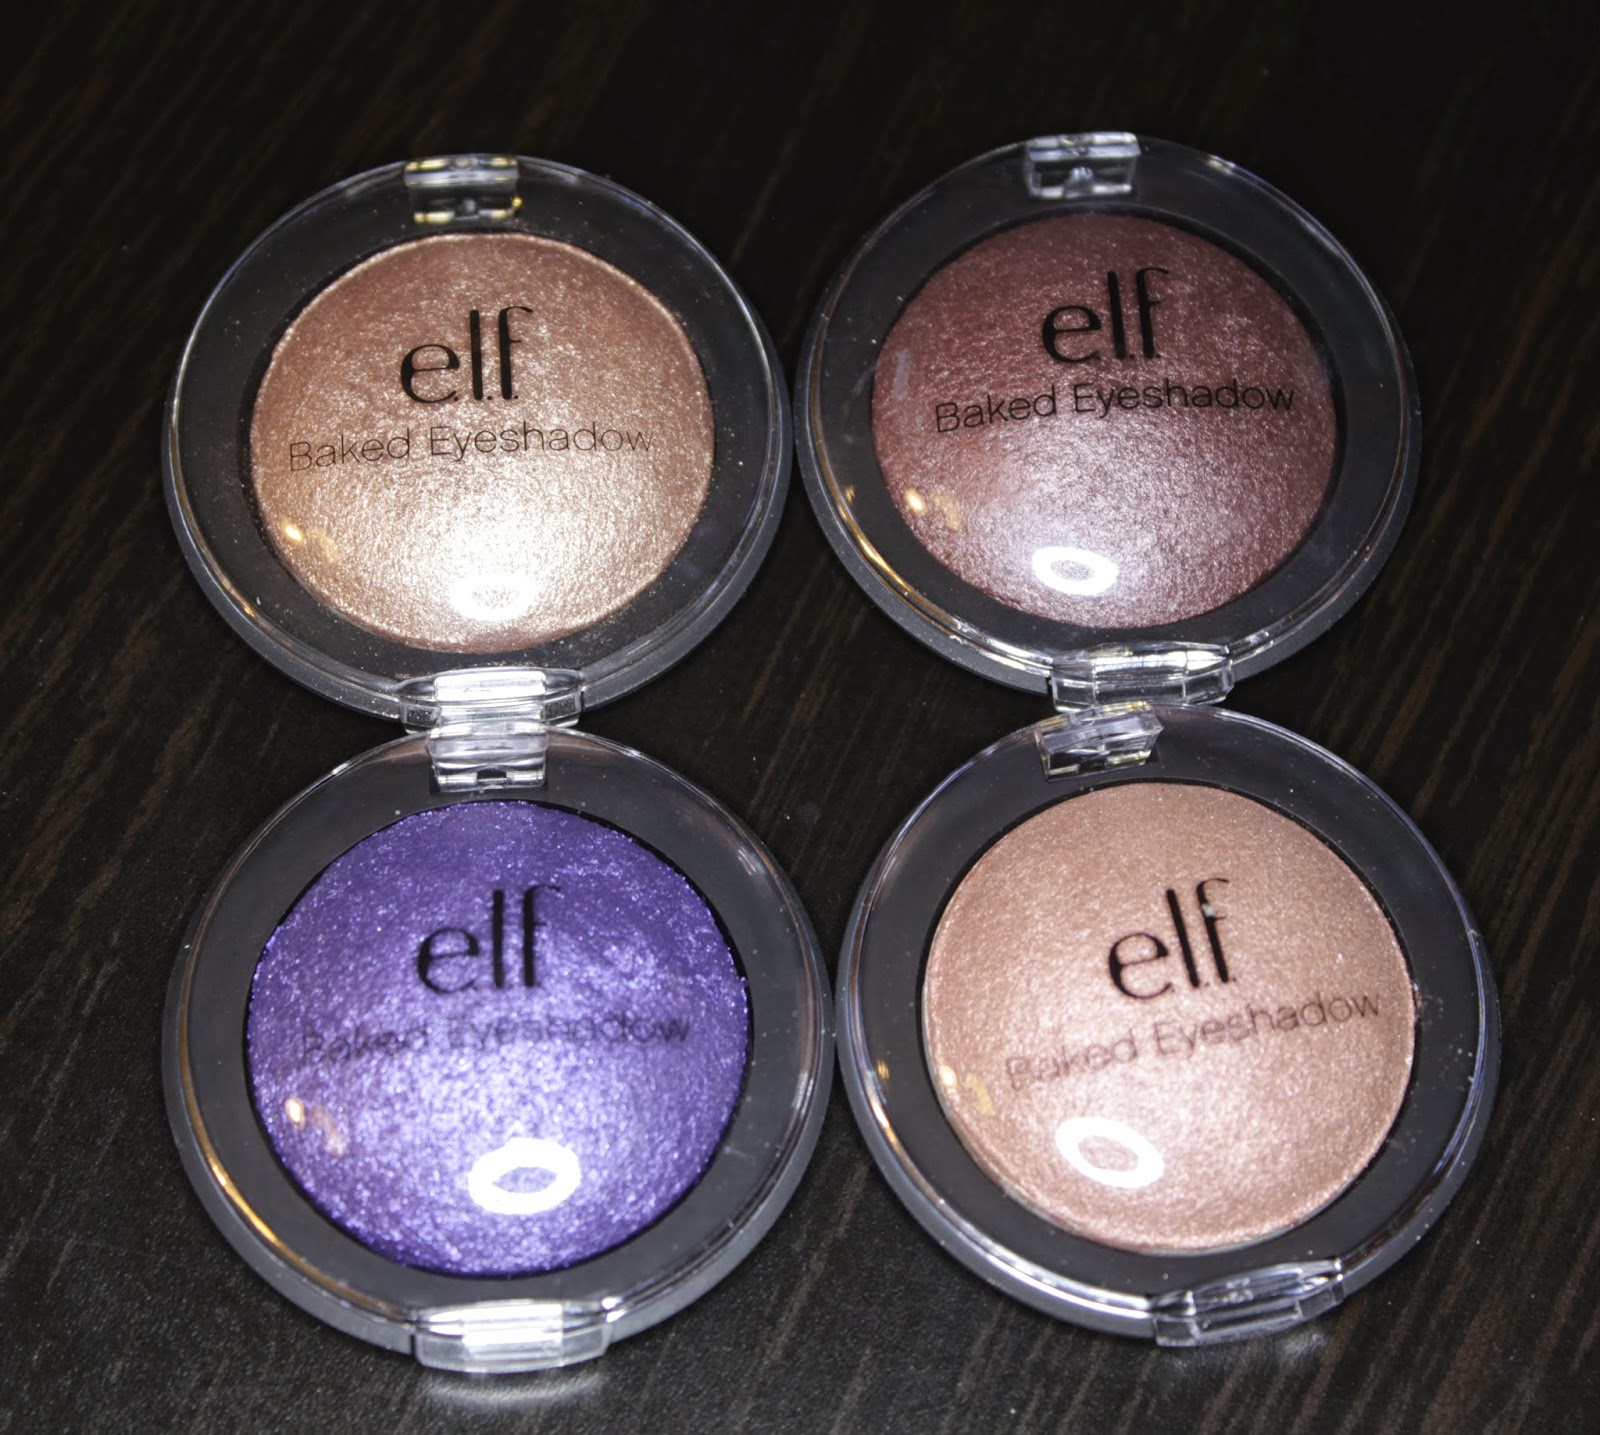 ELF Baked Eyeshadows